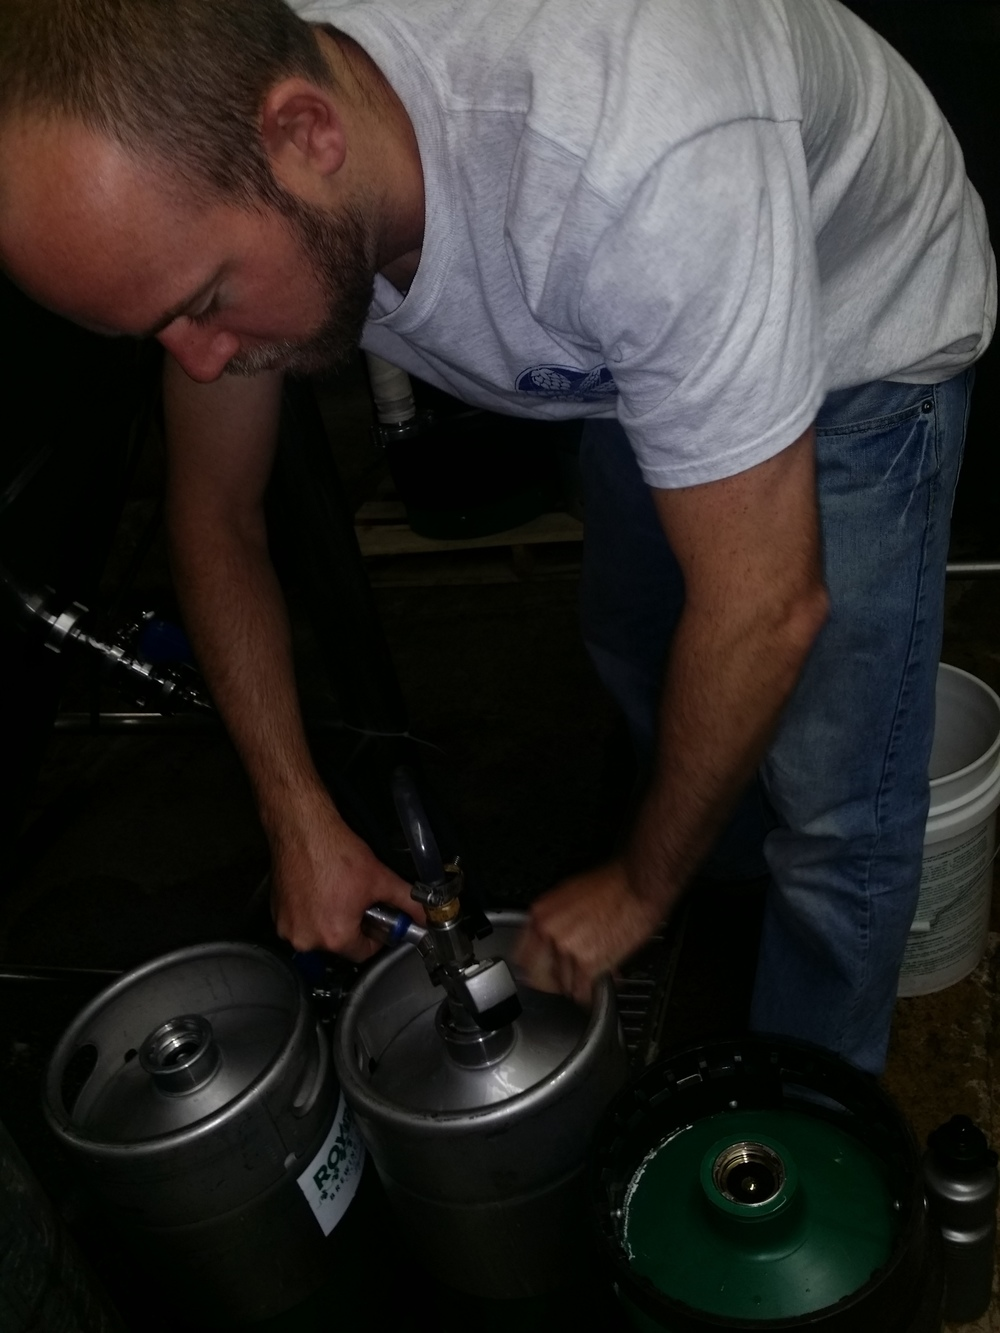 Chris kegging the Dark Horse...it's galloping right into the kegs